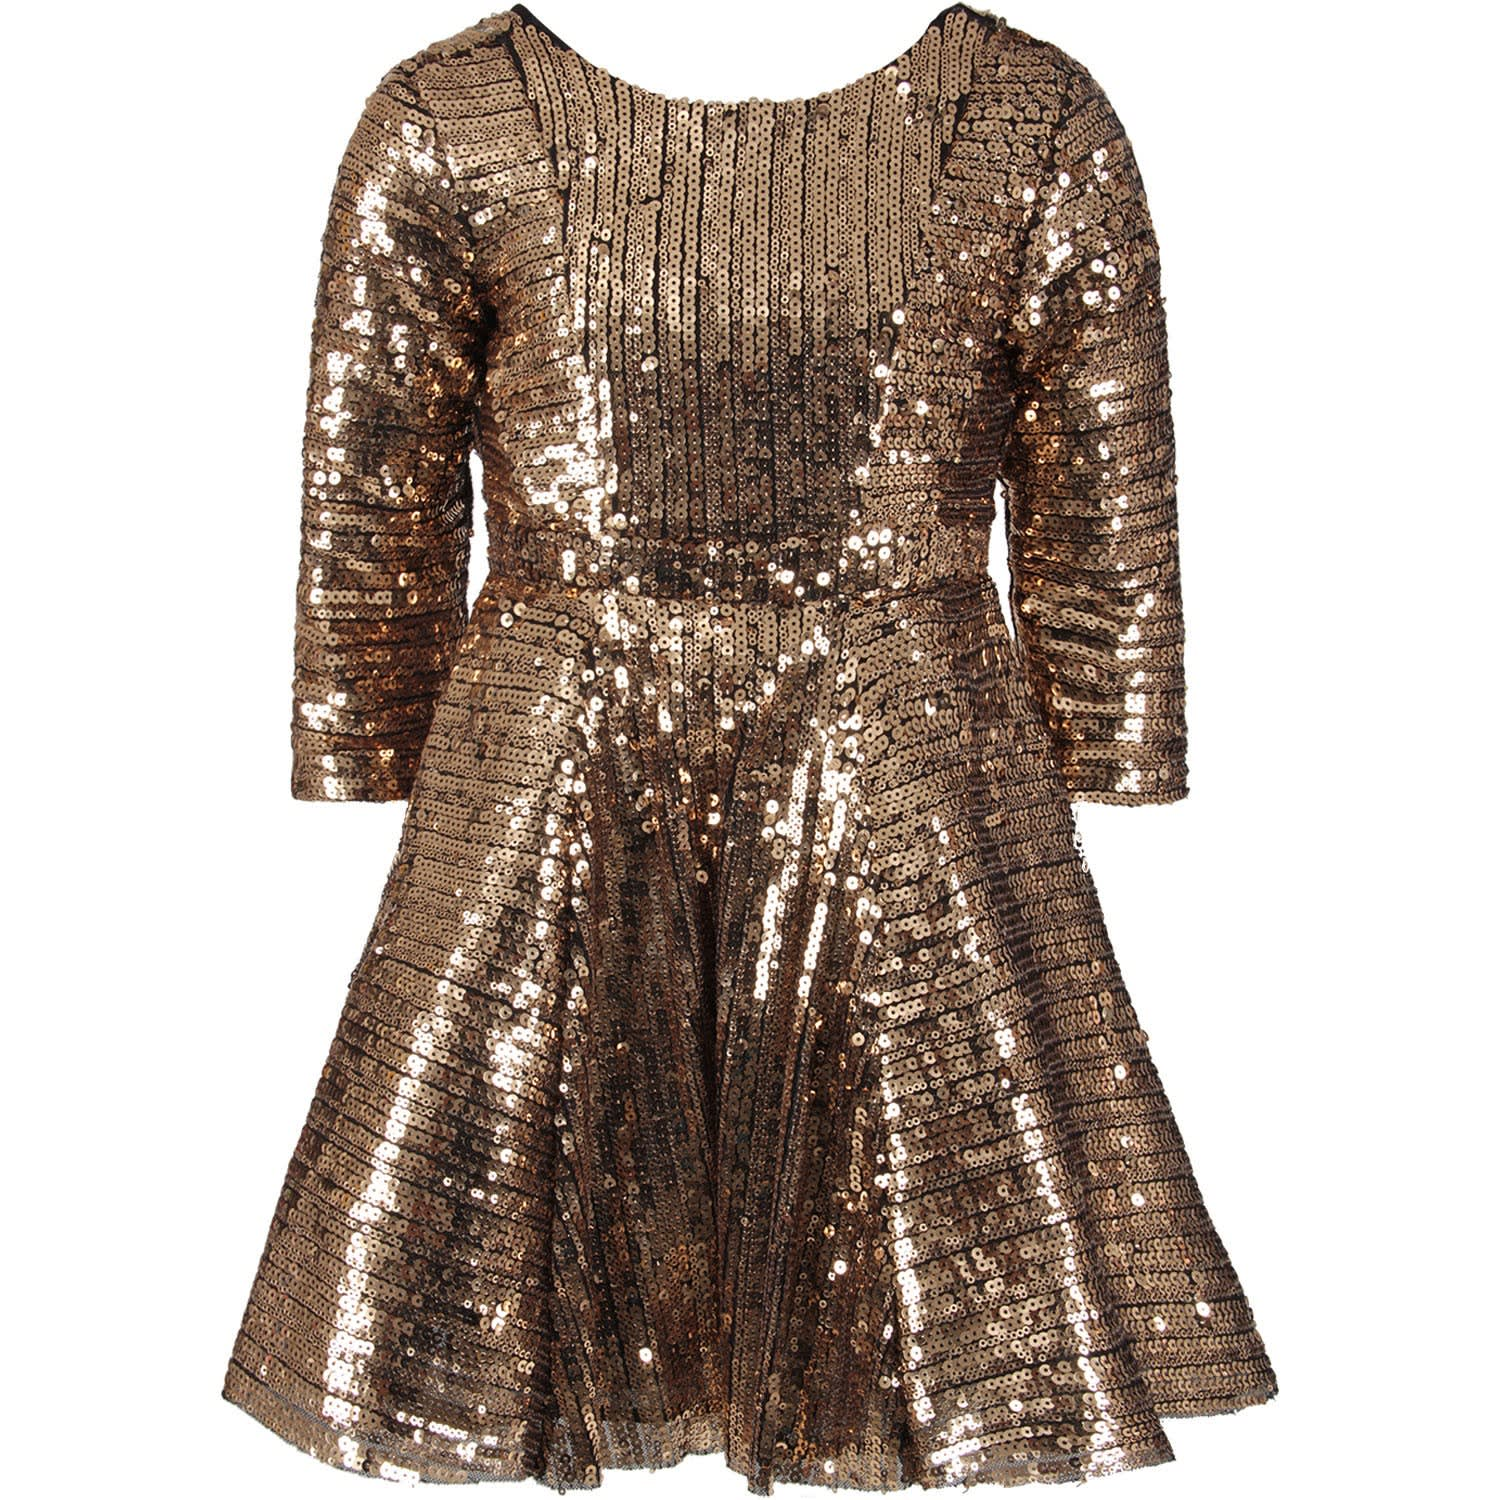 Le Gemelline by Feleppa Pink Girl brillo Dress With Sequins